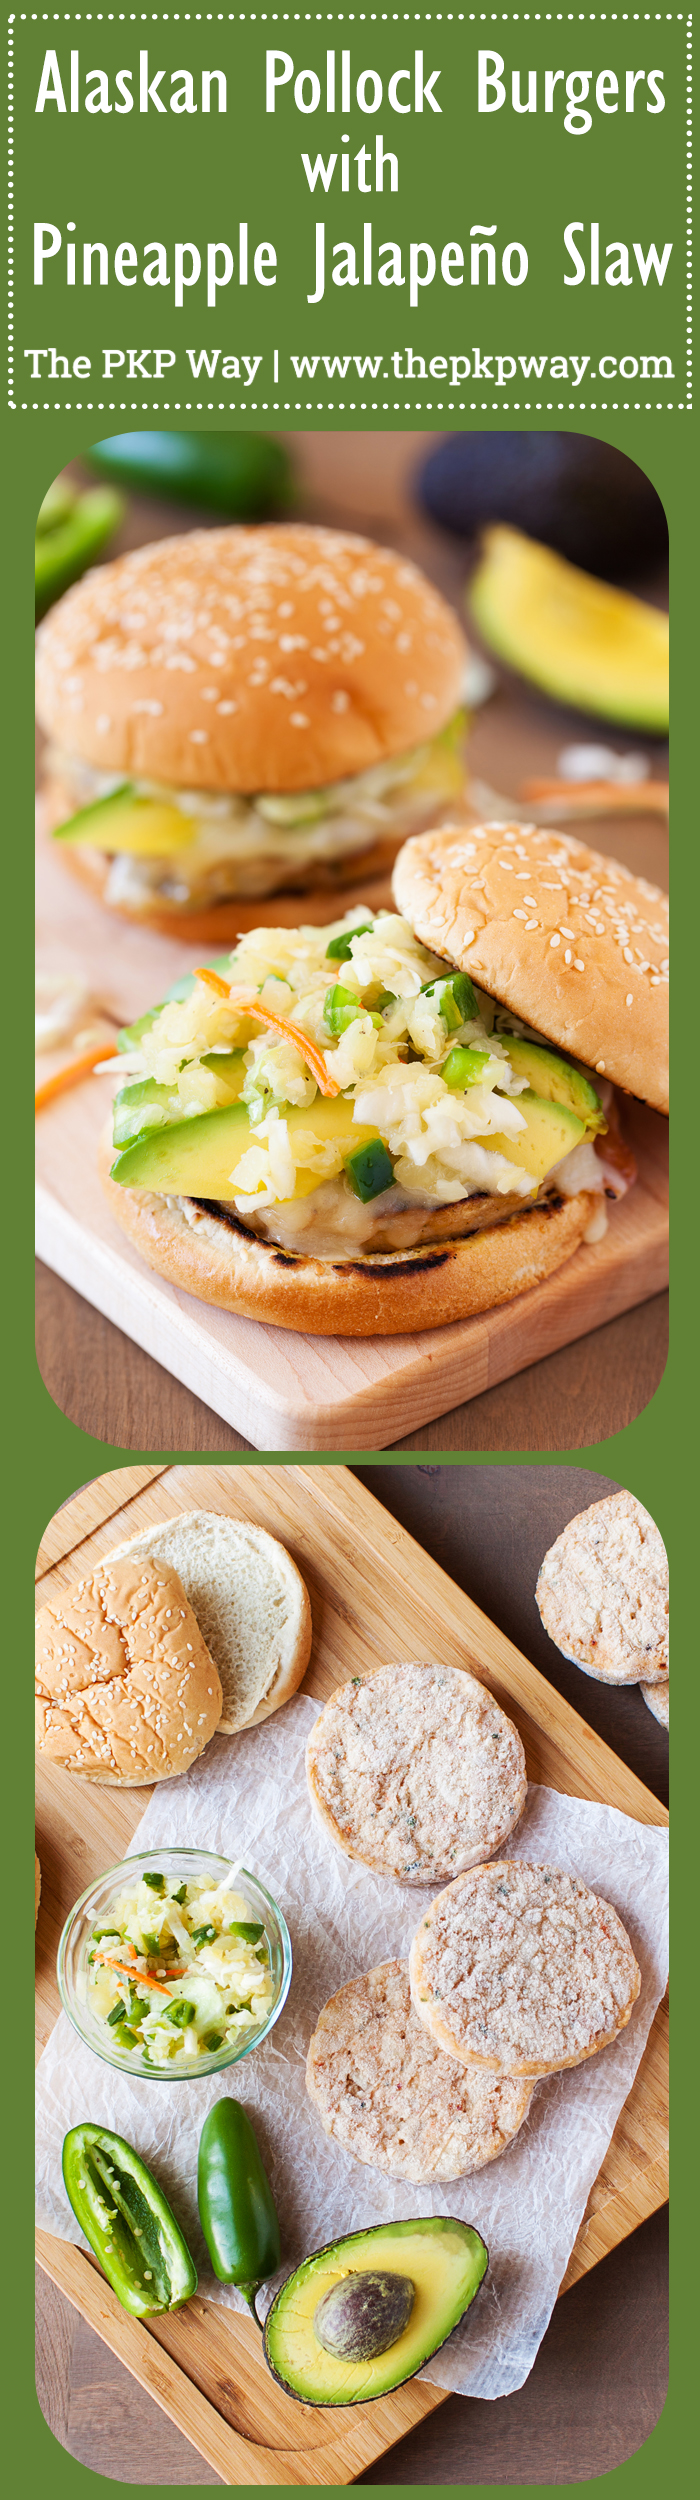 These Alaskan Pollock Burgers with Pineapple and Jalapeño Slaw are a healthy alternative to a regular burger yet just as delicious as an item on the menu of a gourmet burger restaurant.